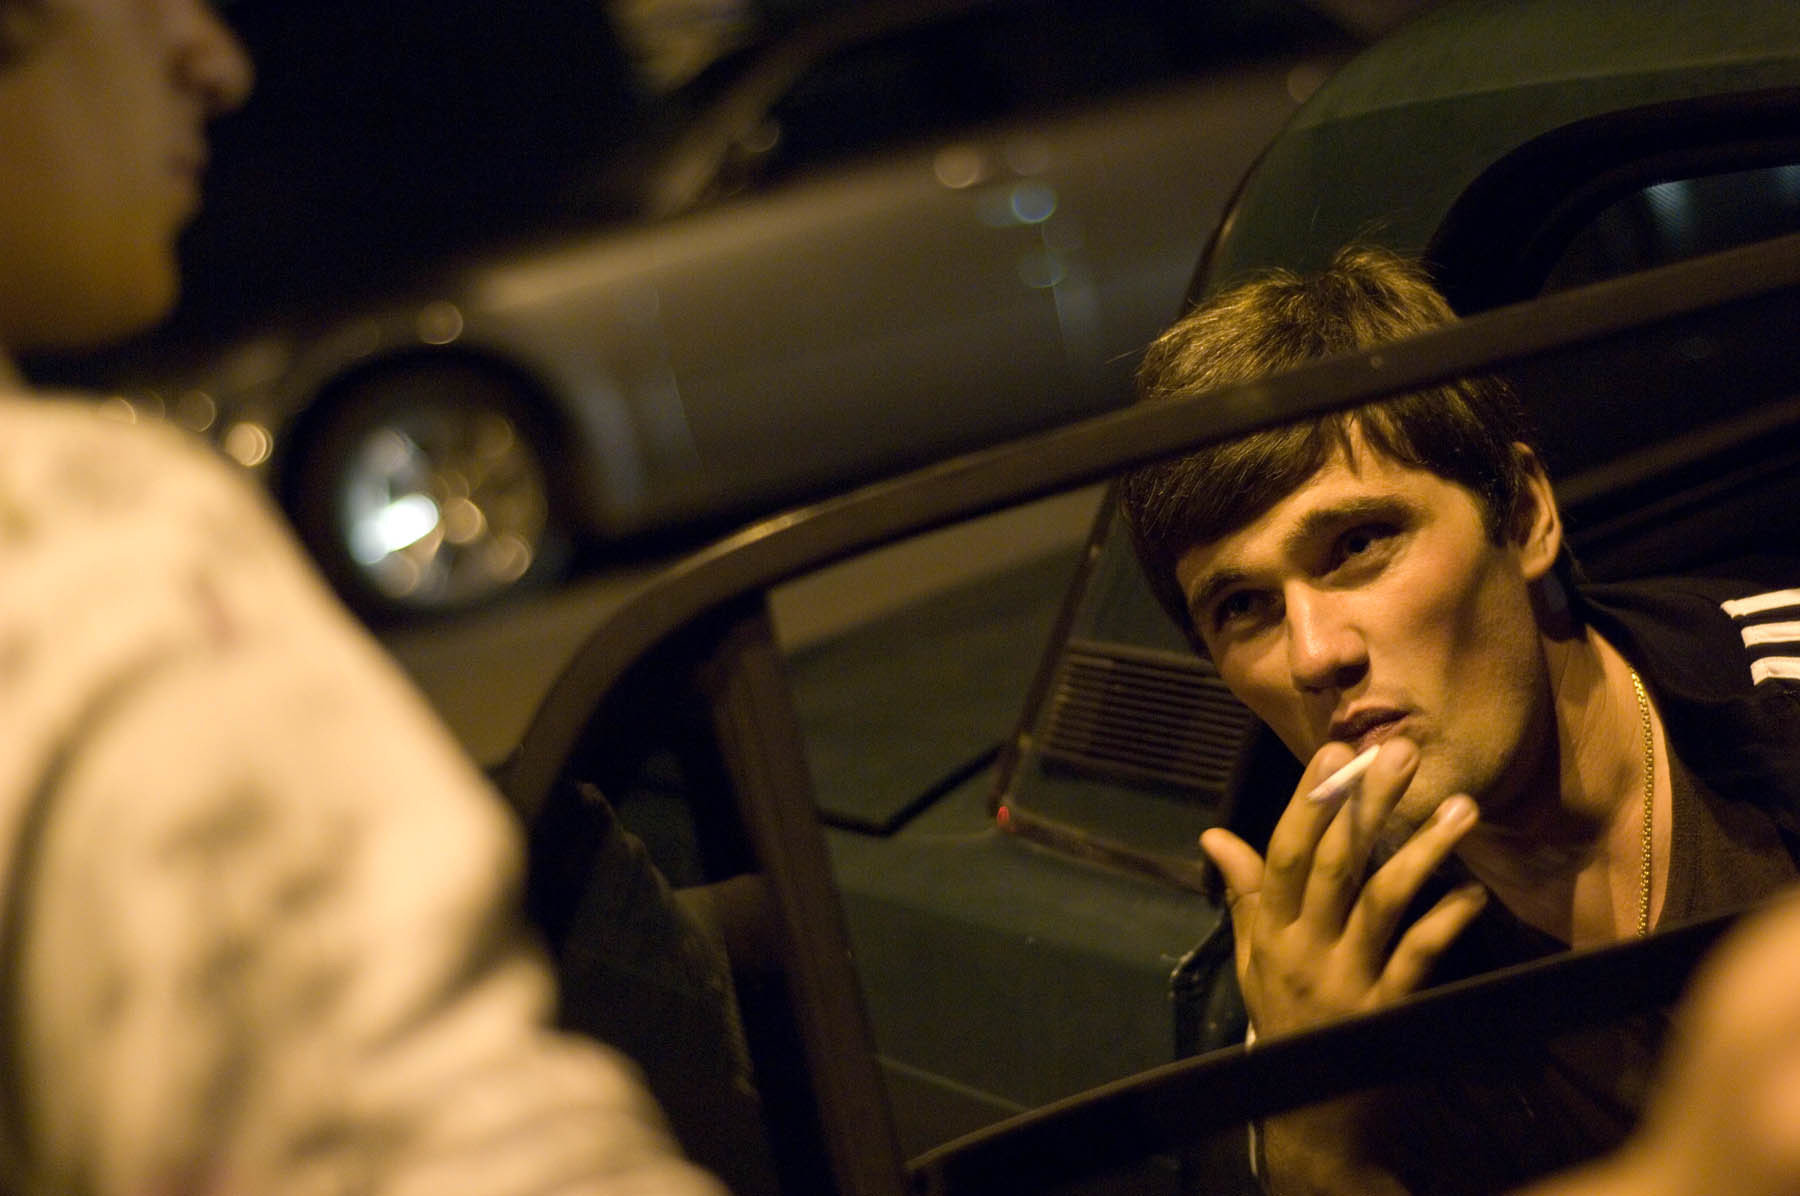 Young men spend many evenings smoking and conversing around their vehicles on the promenade in Sukhum.